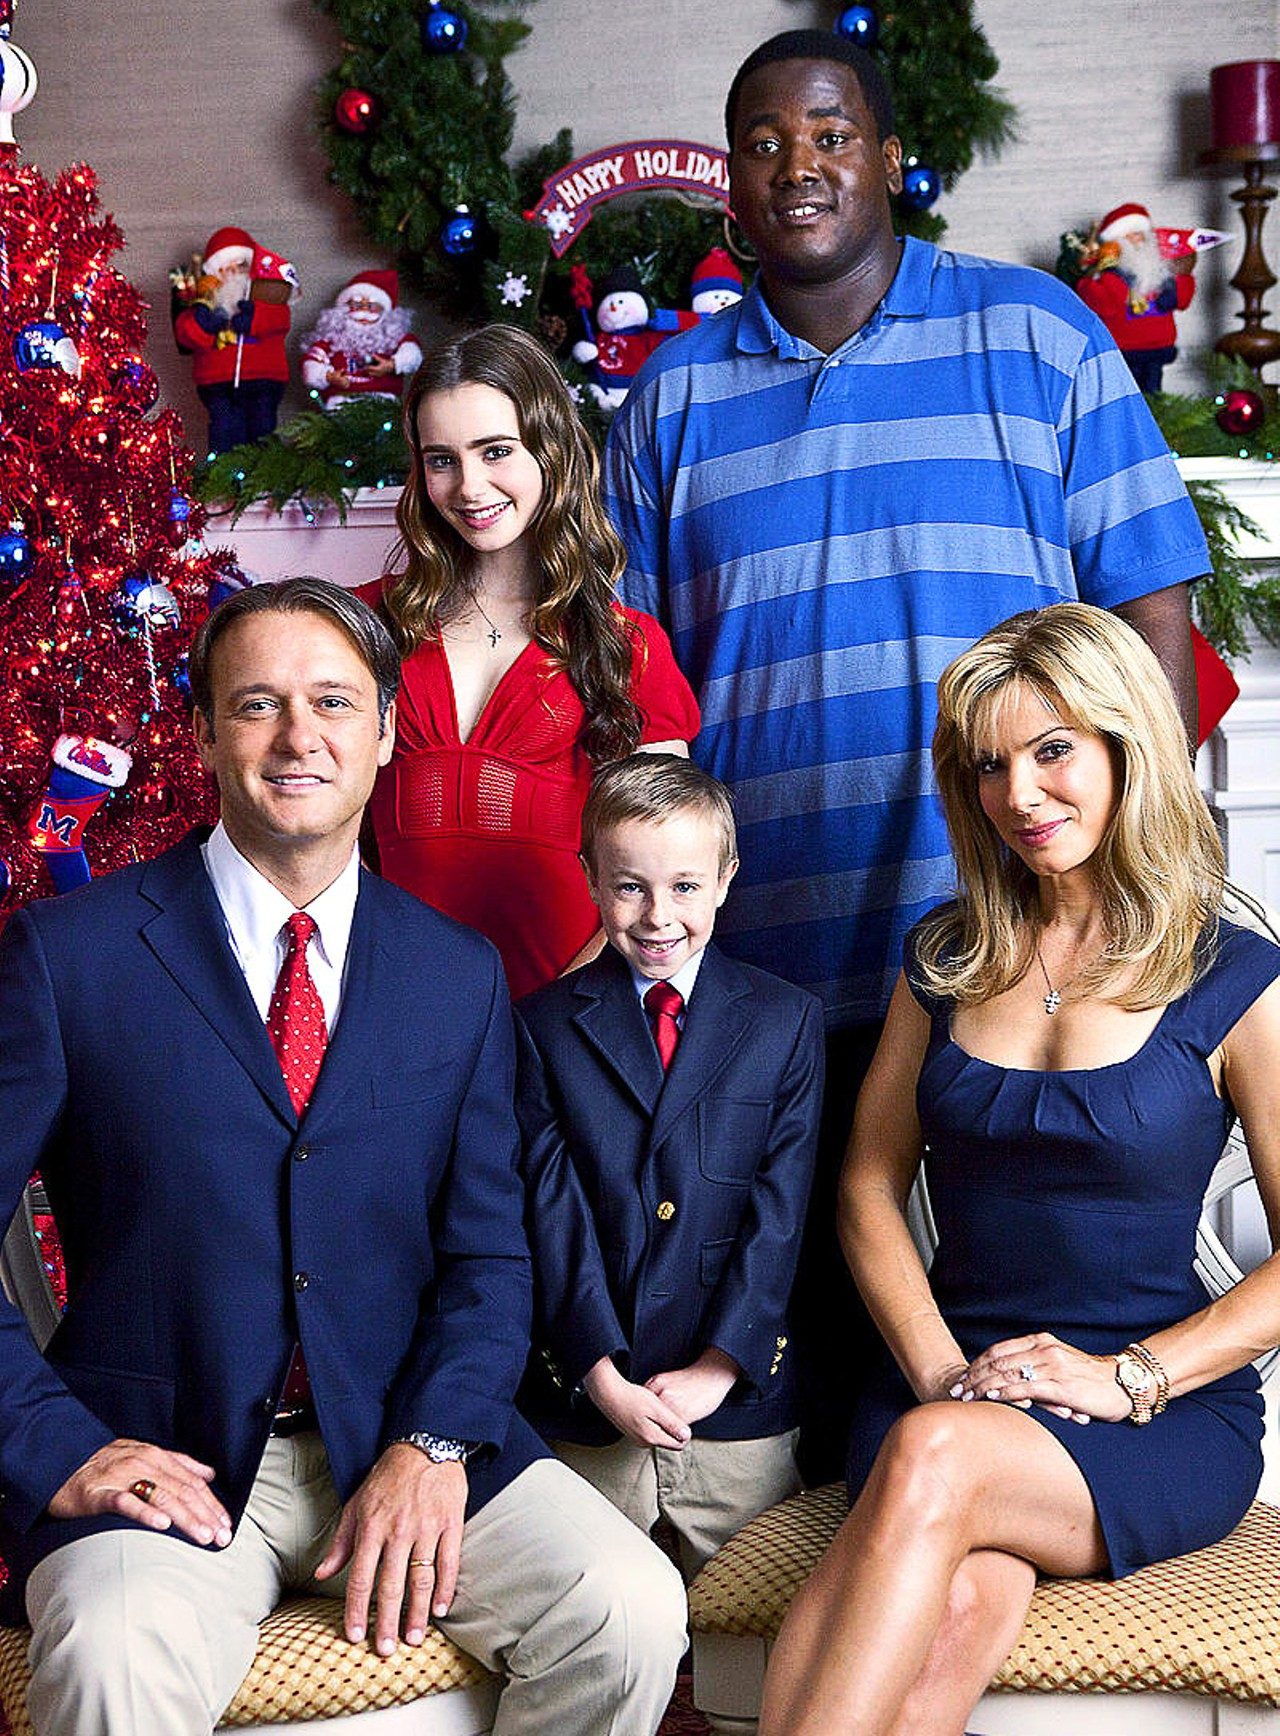 click to enlarge - Black People Christmas